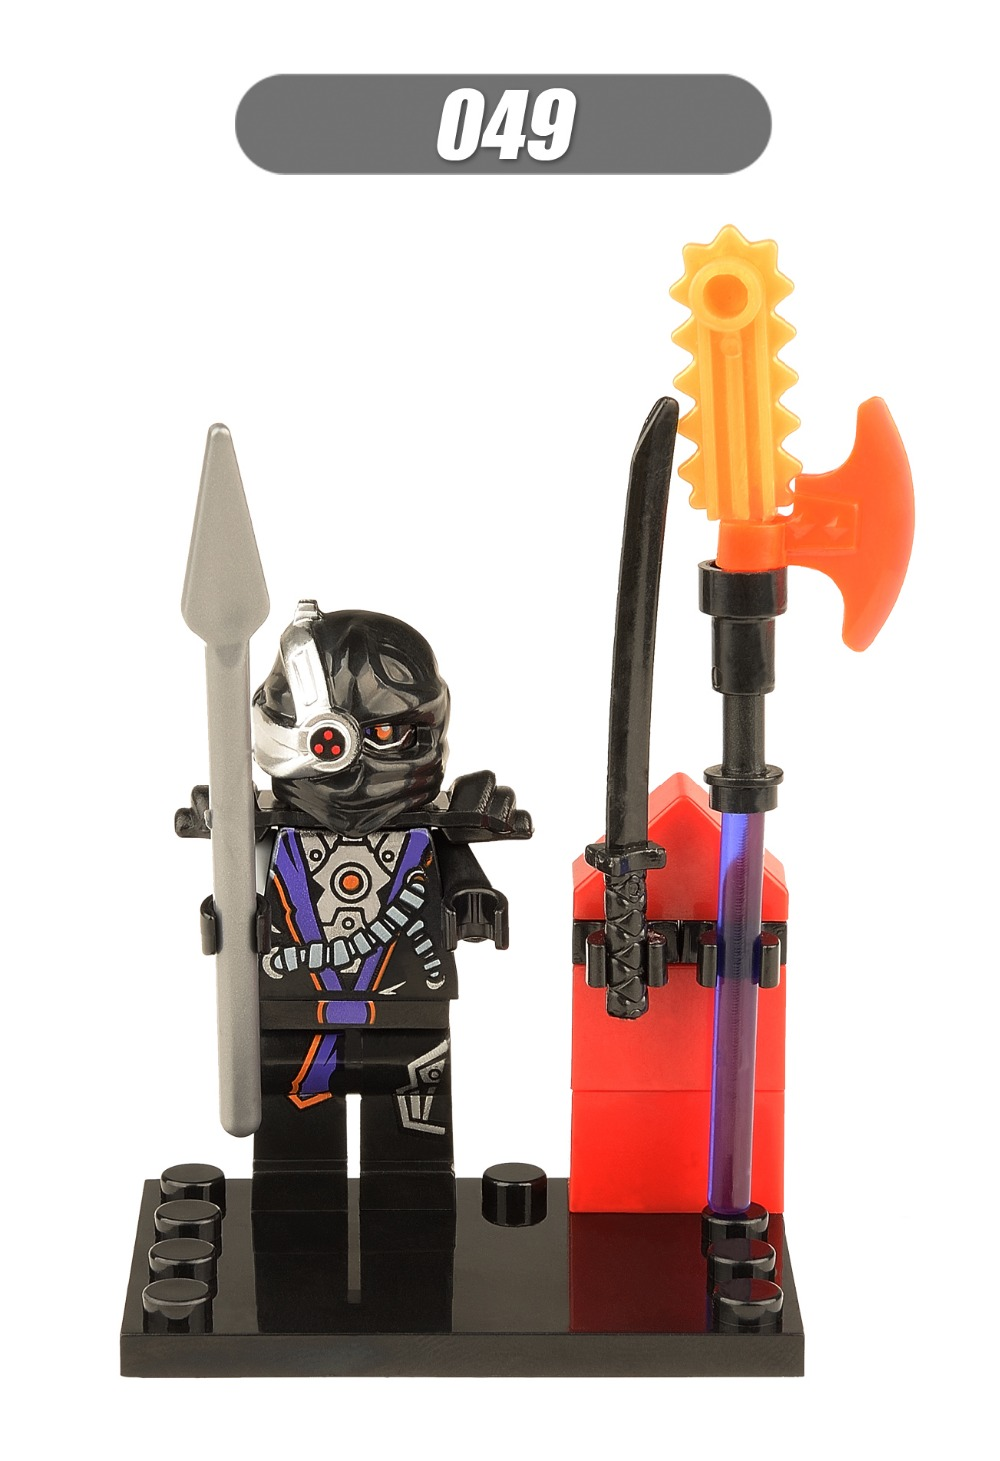 5XH049 General Cryptor Phantom Ninja Spinjitzu Force Awakens Minifigures Building Blocks Sets Toys